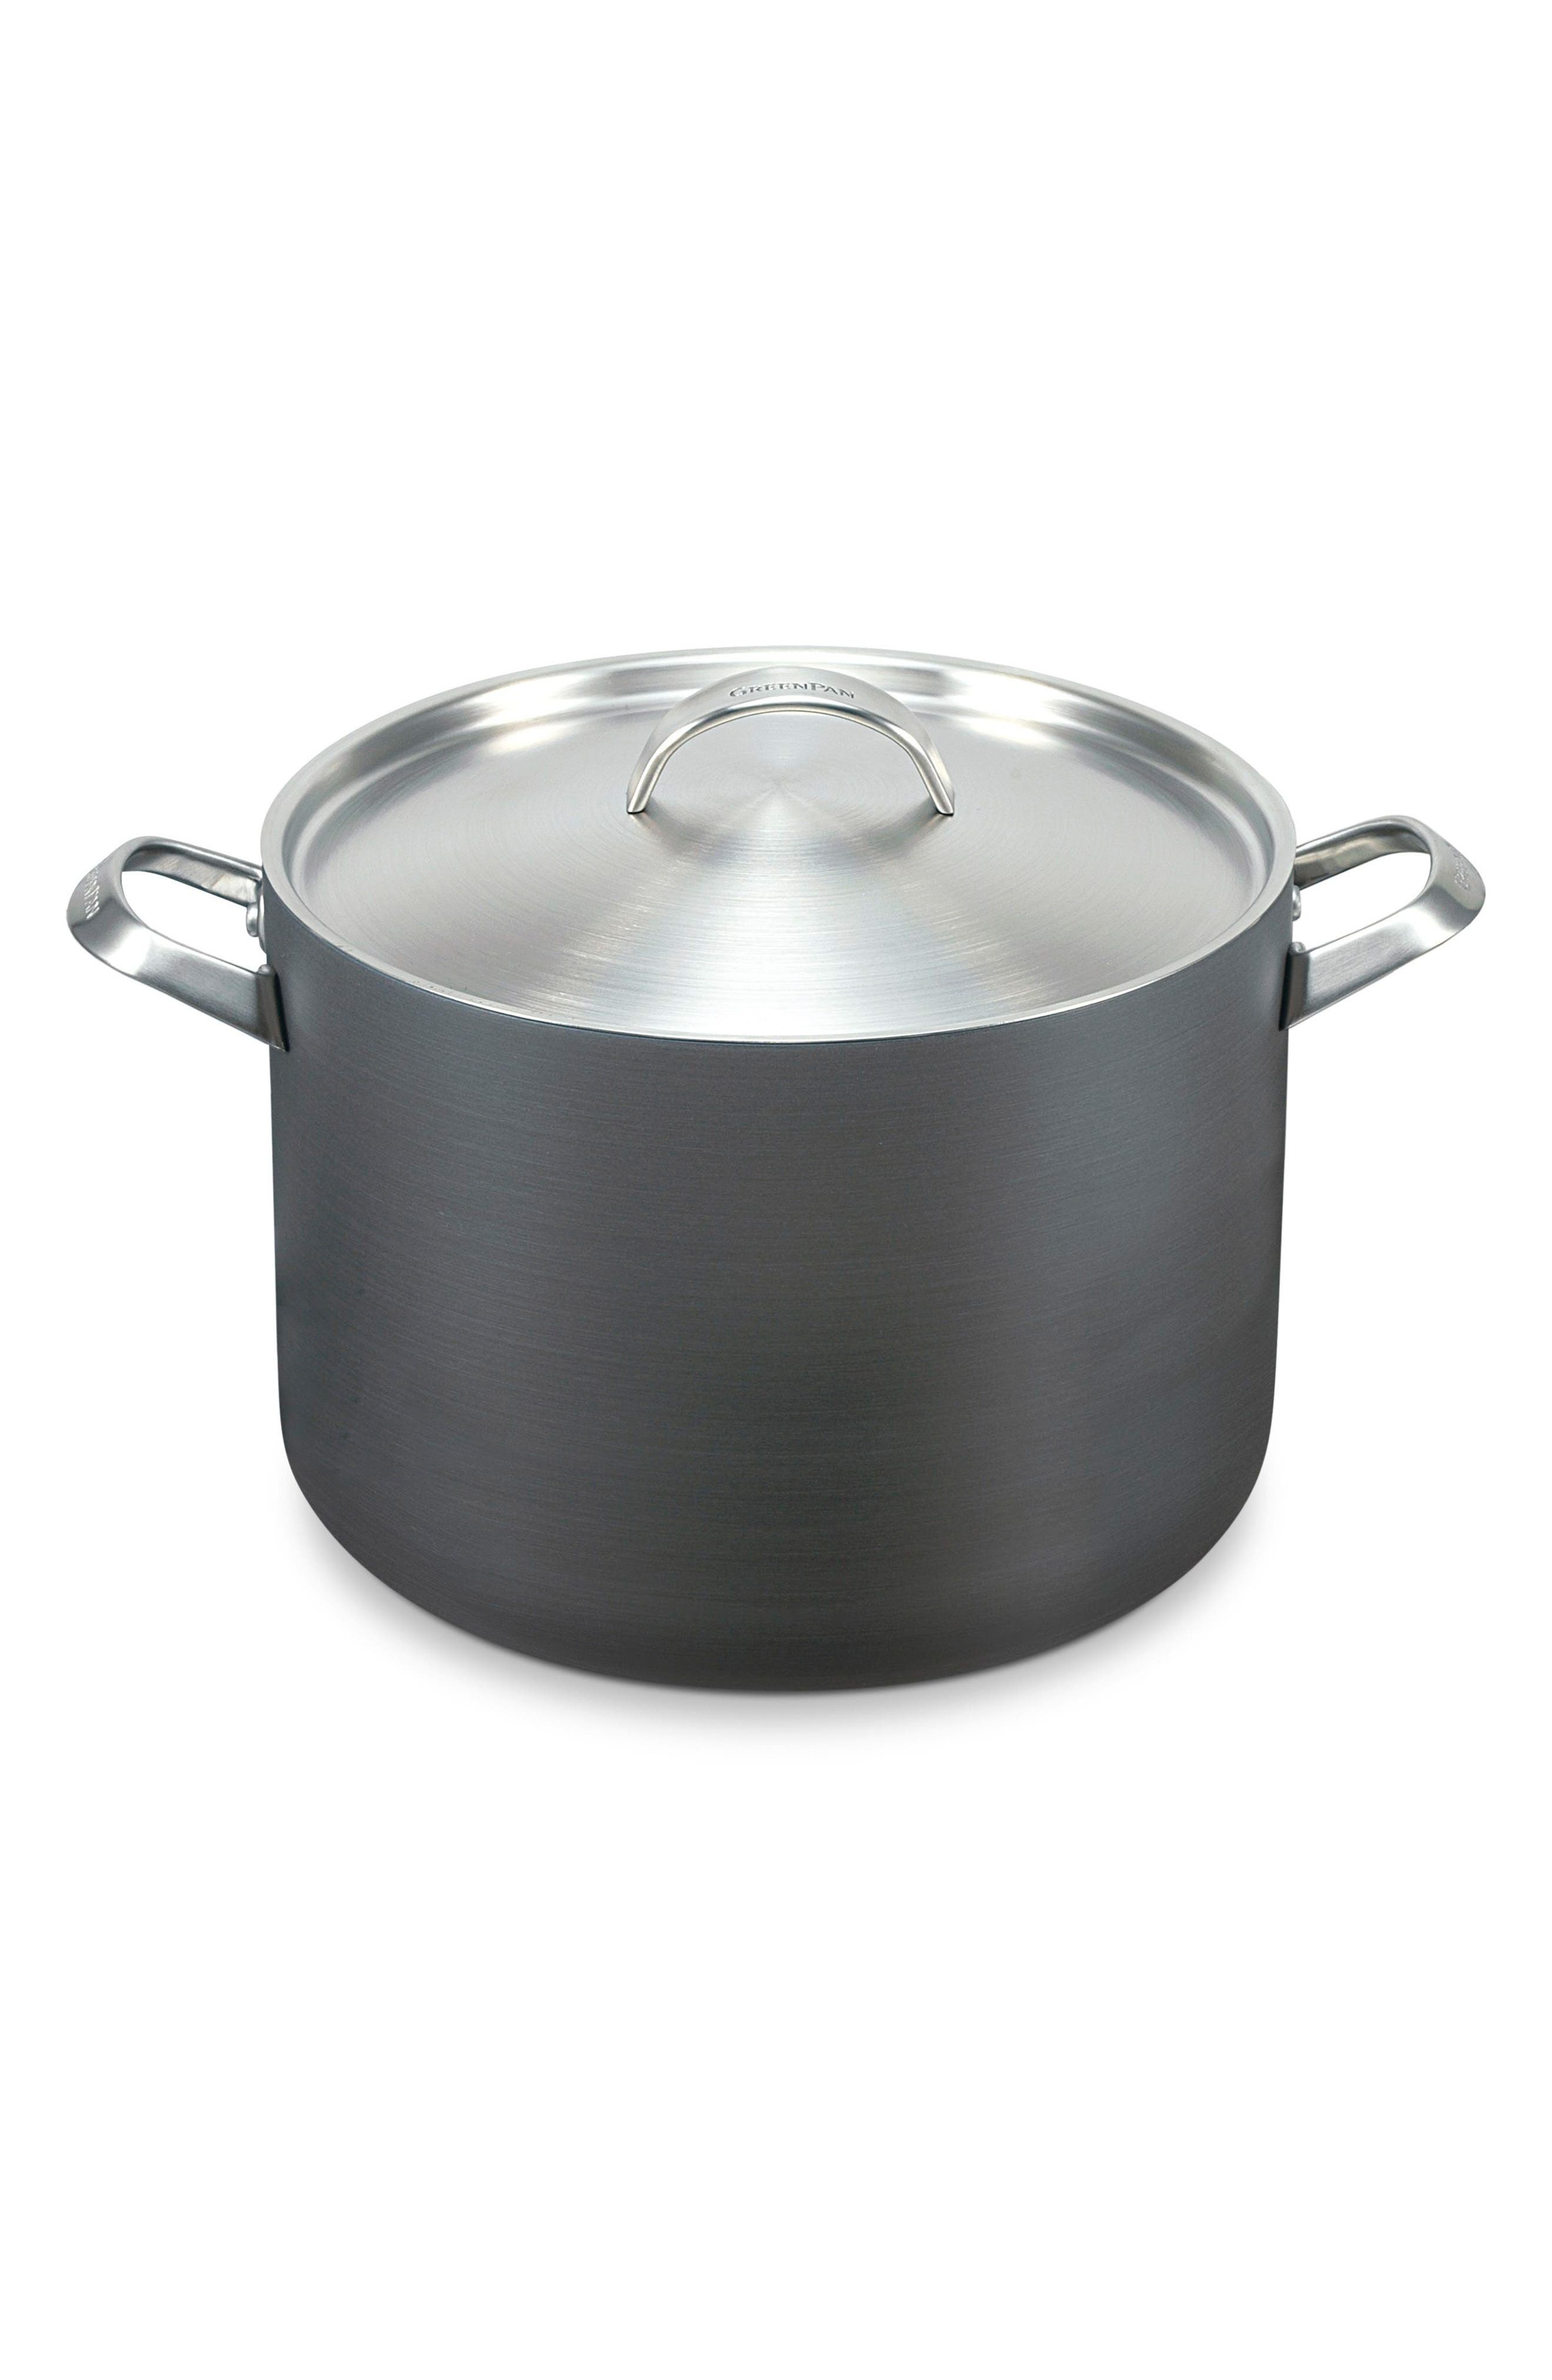 Paris 8-Quart Multilayer Stainless Steel Ceramic Nonstick Stockpot with Lid,                             Main thumbnail 1, color,                             GREY